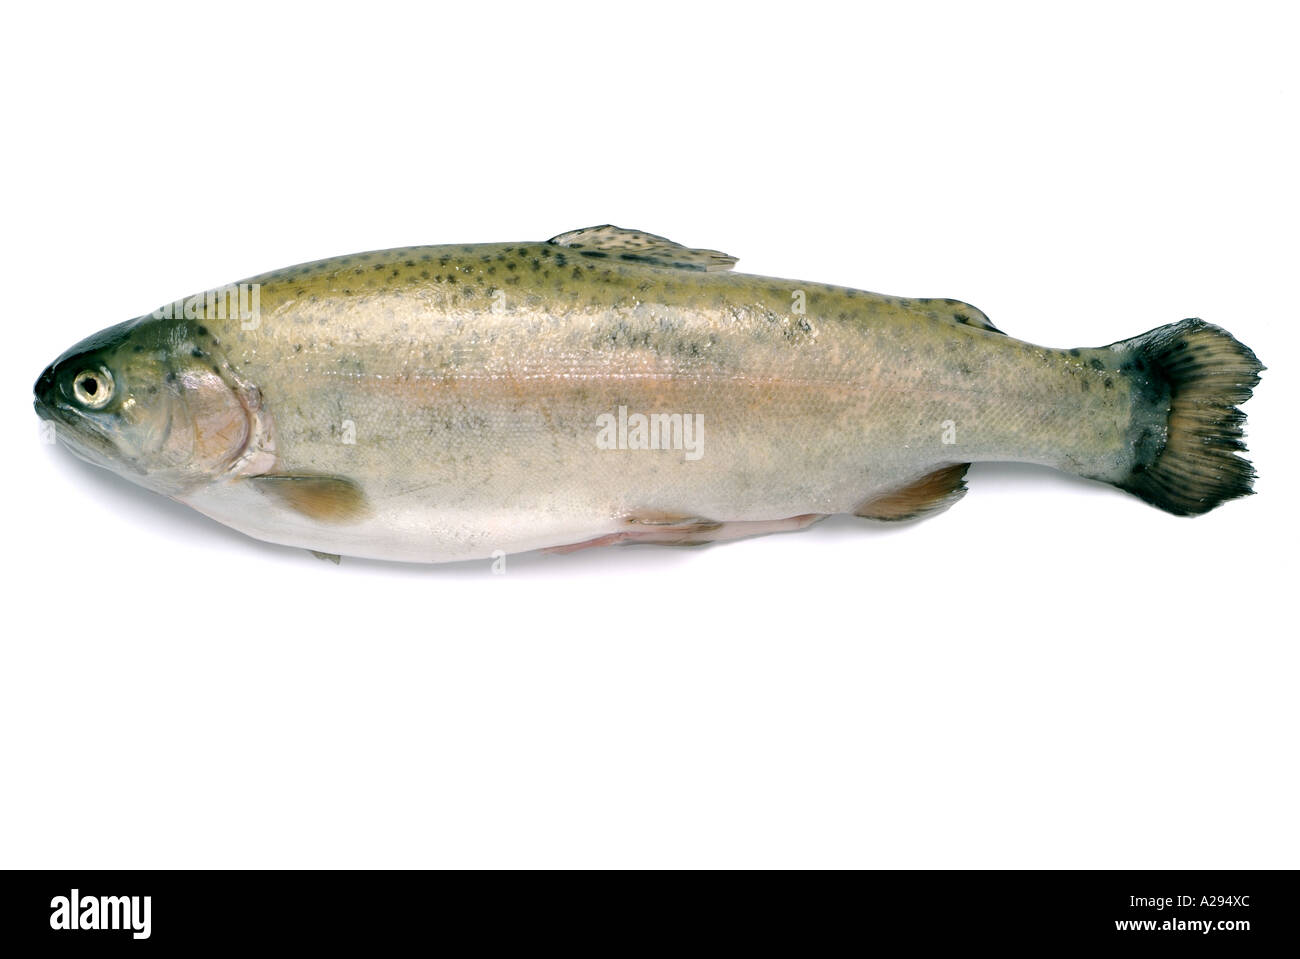 Californian Trout - Stock Image